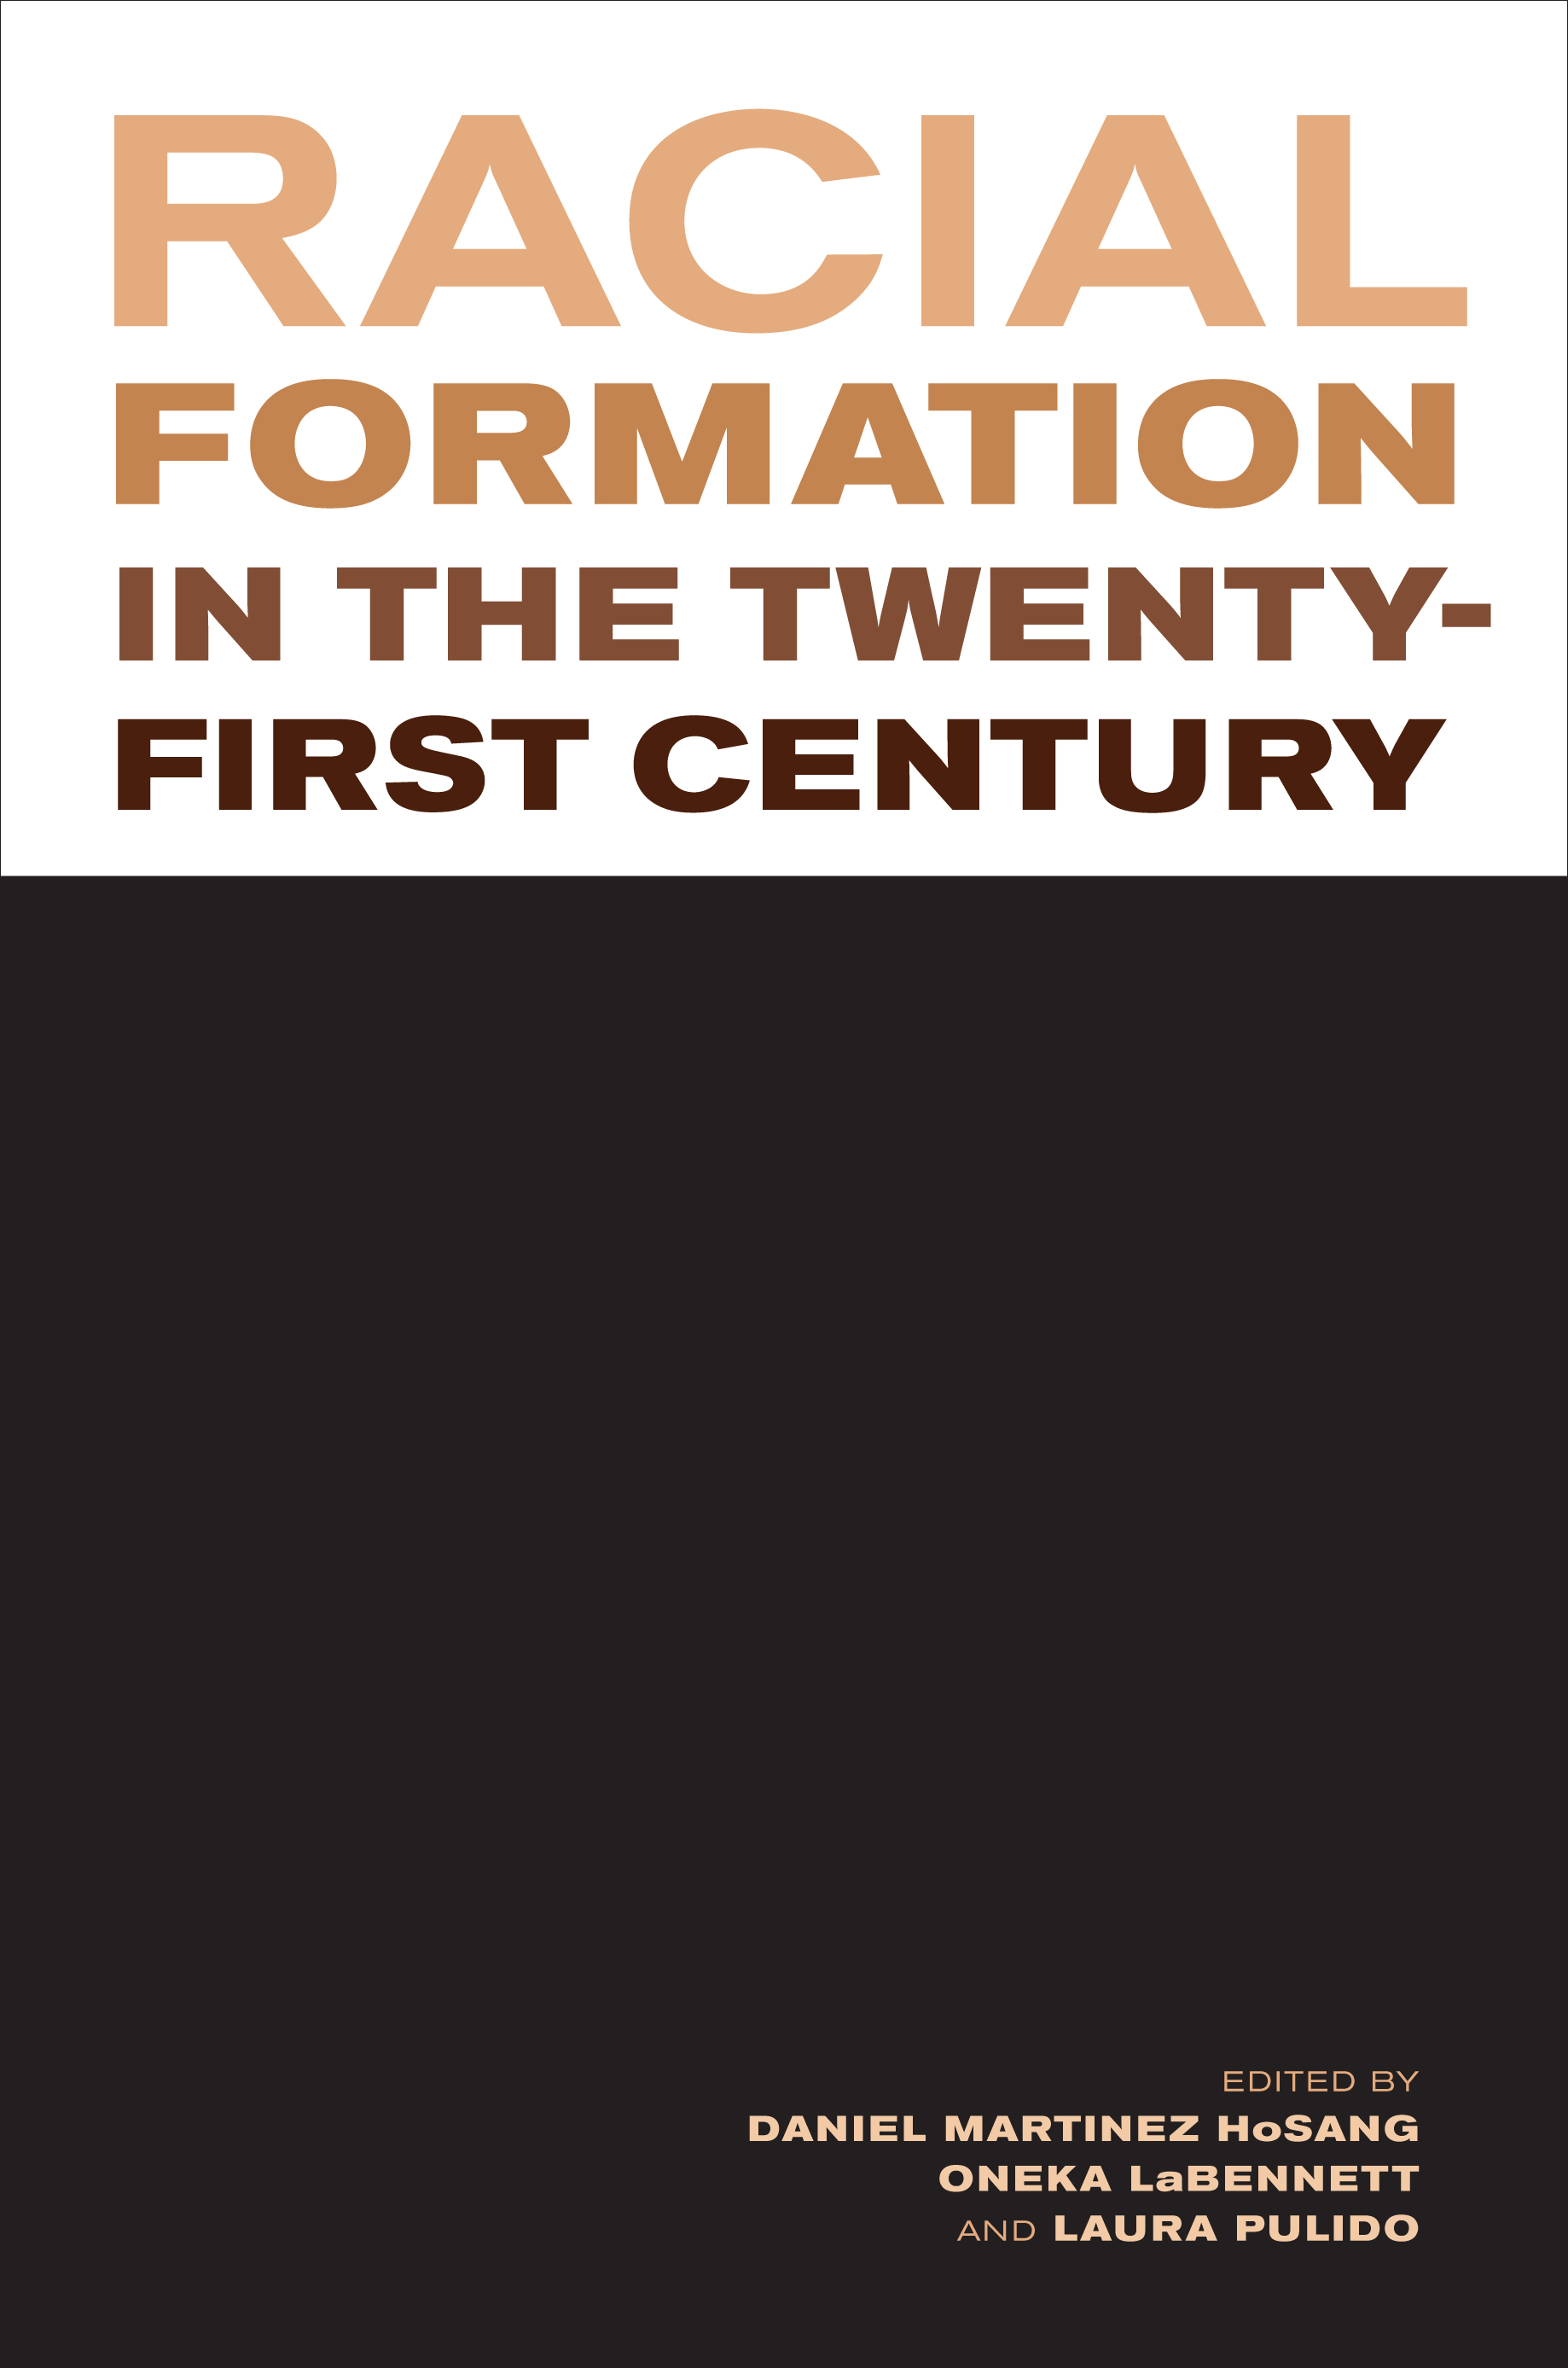 an analysis of racial formation a publication by michael omi and howard winant Ethnic and racial studies does racial formation theory lack the conceptual conceptual tools to understand racism omi, michael and winant, howard 1994 racial.